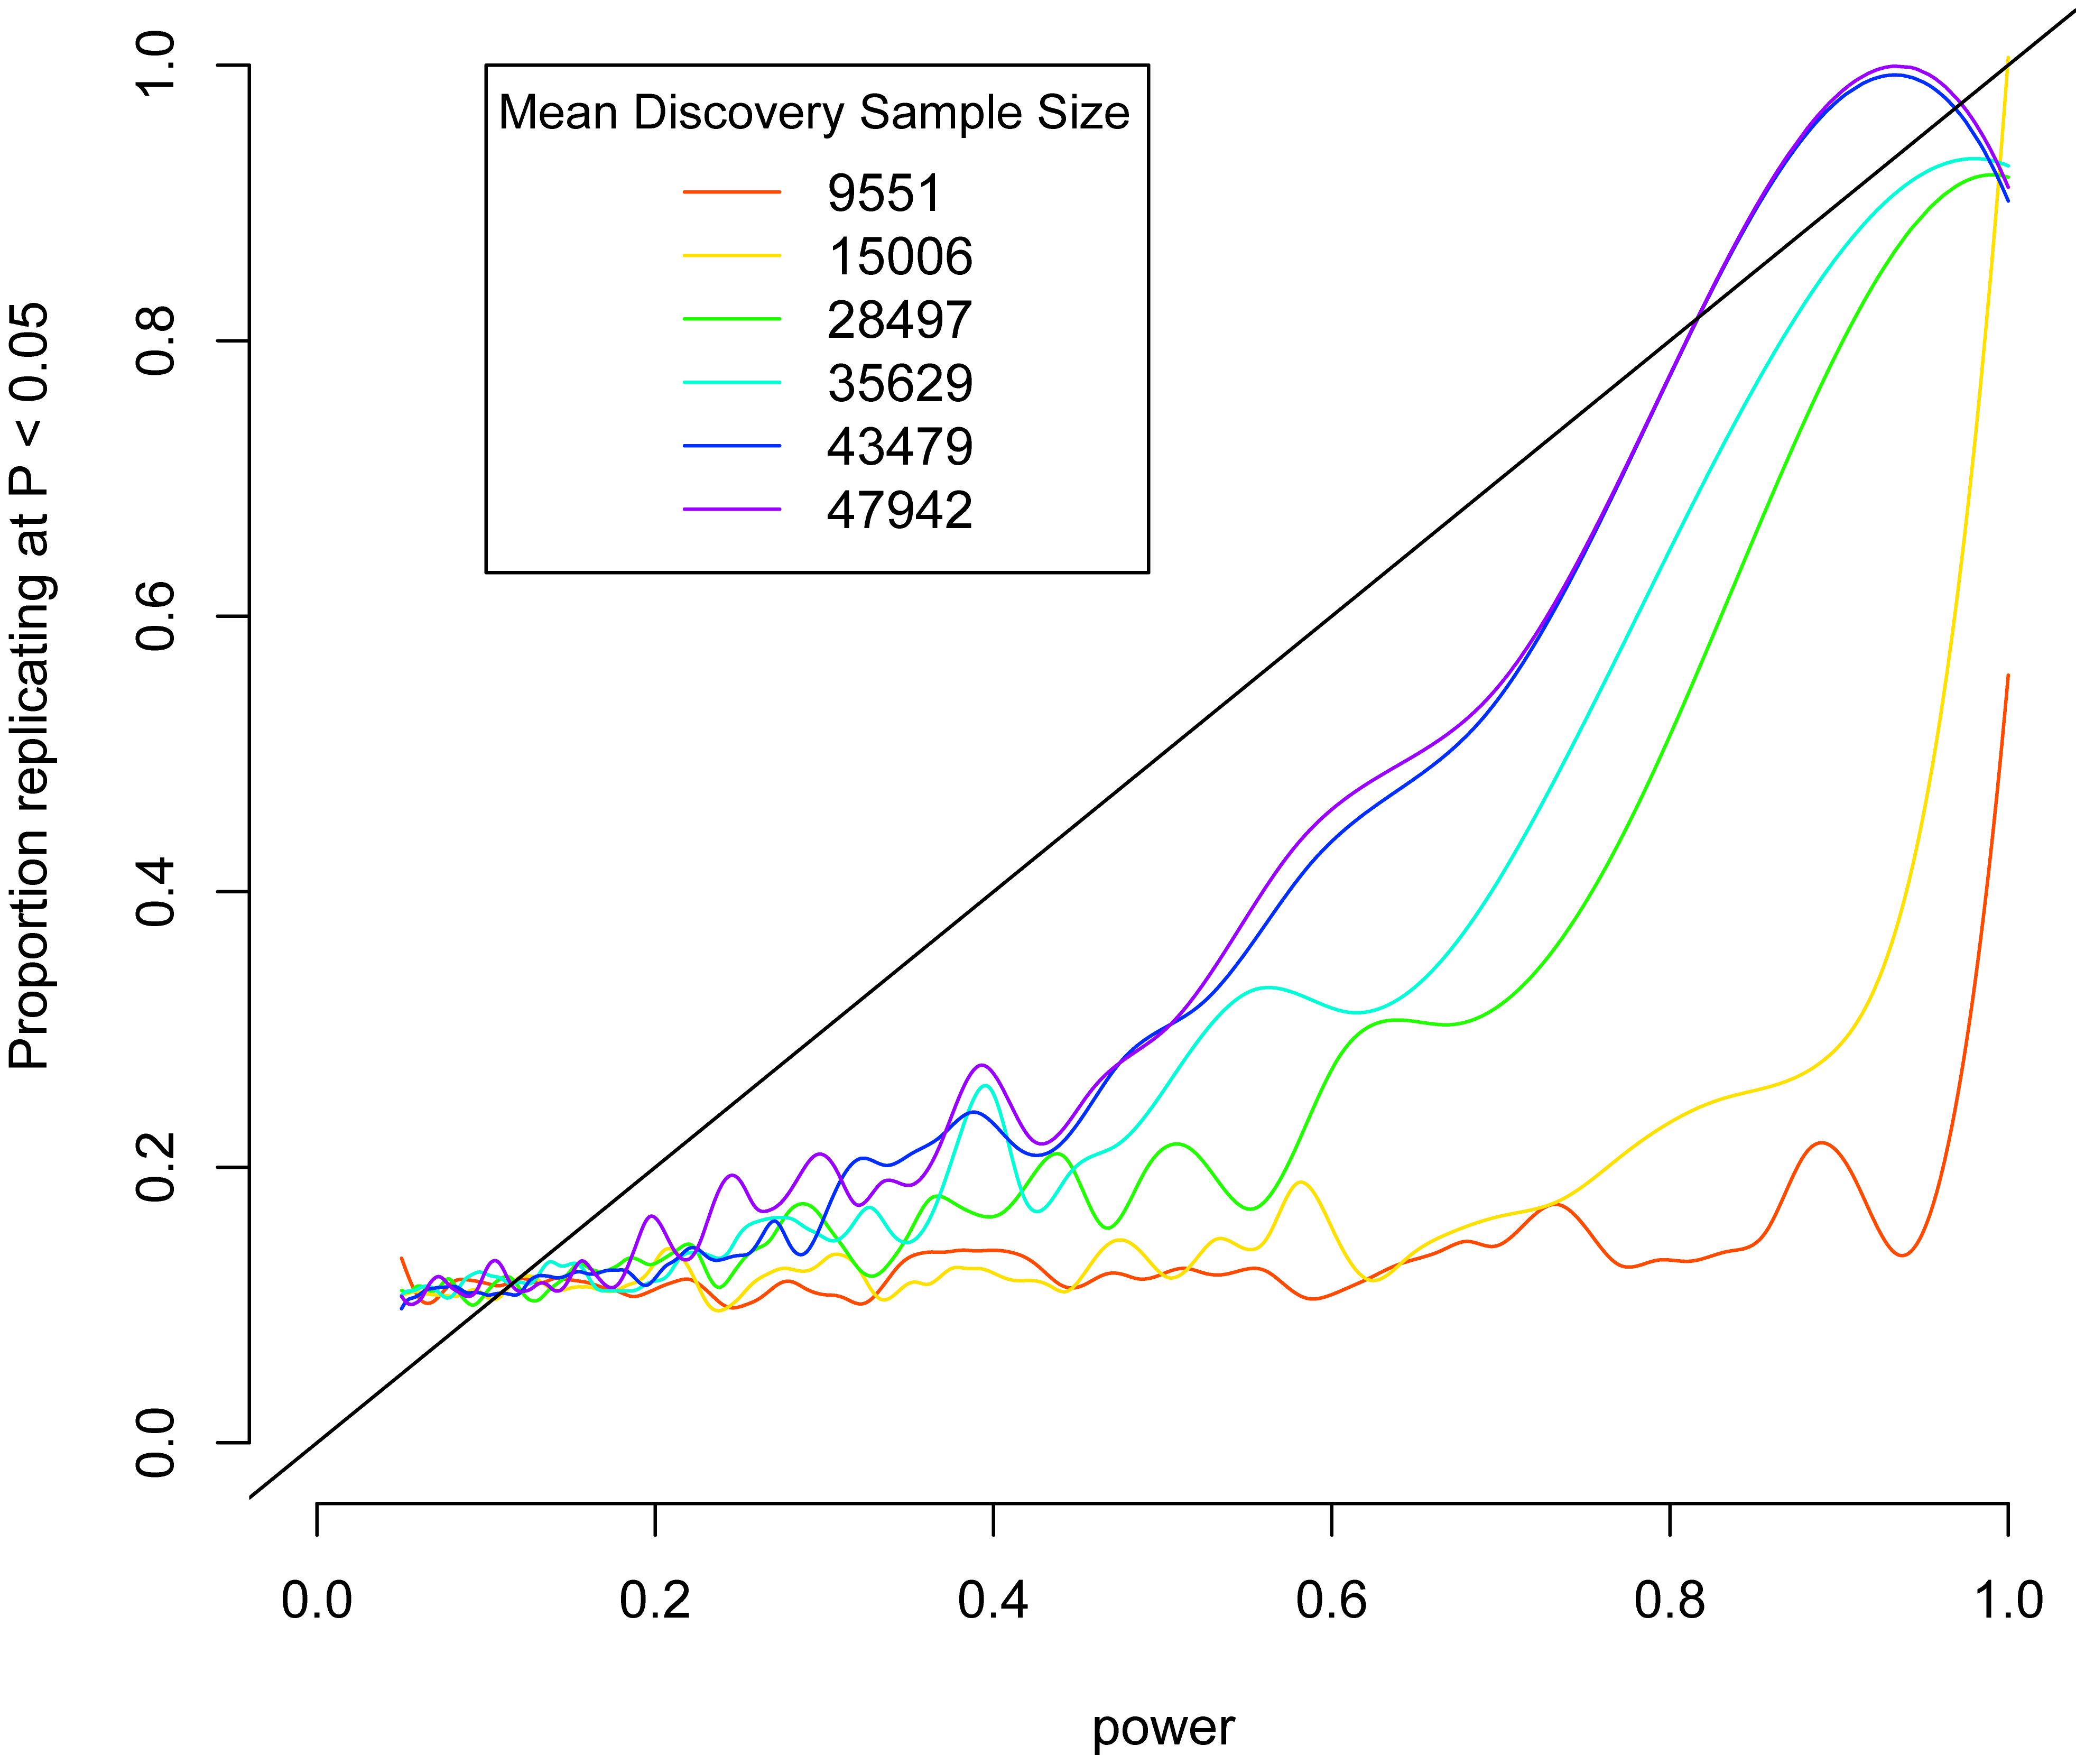 Replication as a function of power in height meta-analysis.